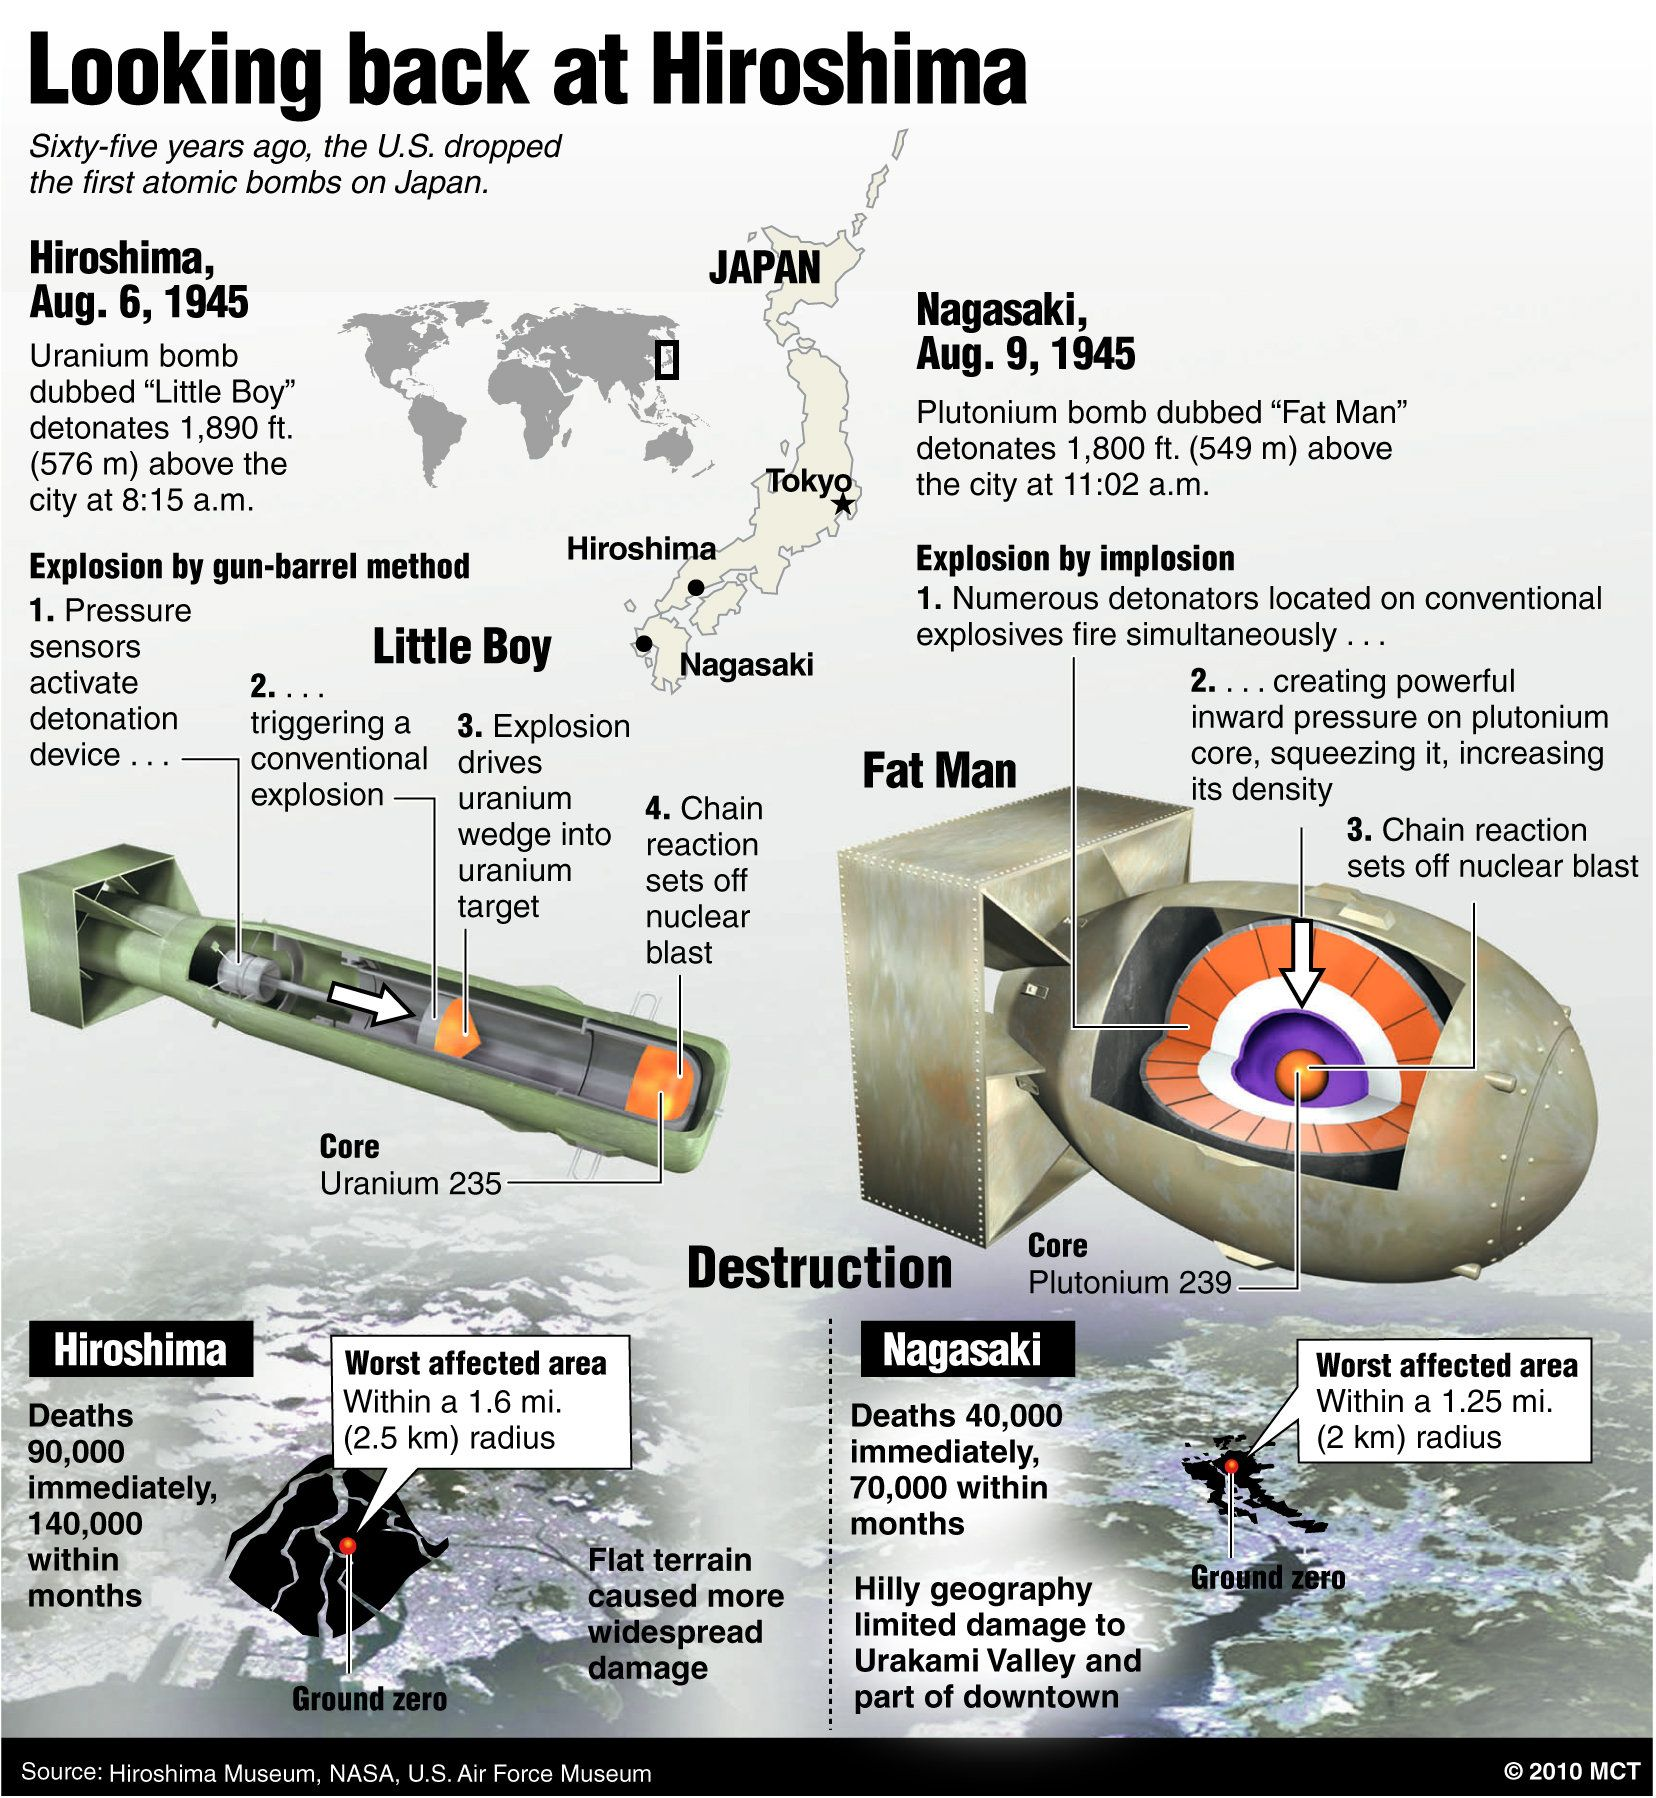 an analysis of the atomic bomb dropped on the japanese city of hiroshima Check out our atomic bomb dropped on hiroshima essay it is clear that the atomic bombing of hiroshima was carried out by the then united state administration just before the end of world war ii the bombing on a japanese city was catastrophic in nature since the destruction it caused was detrimental.